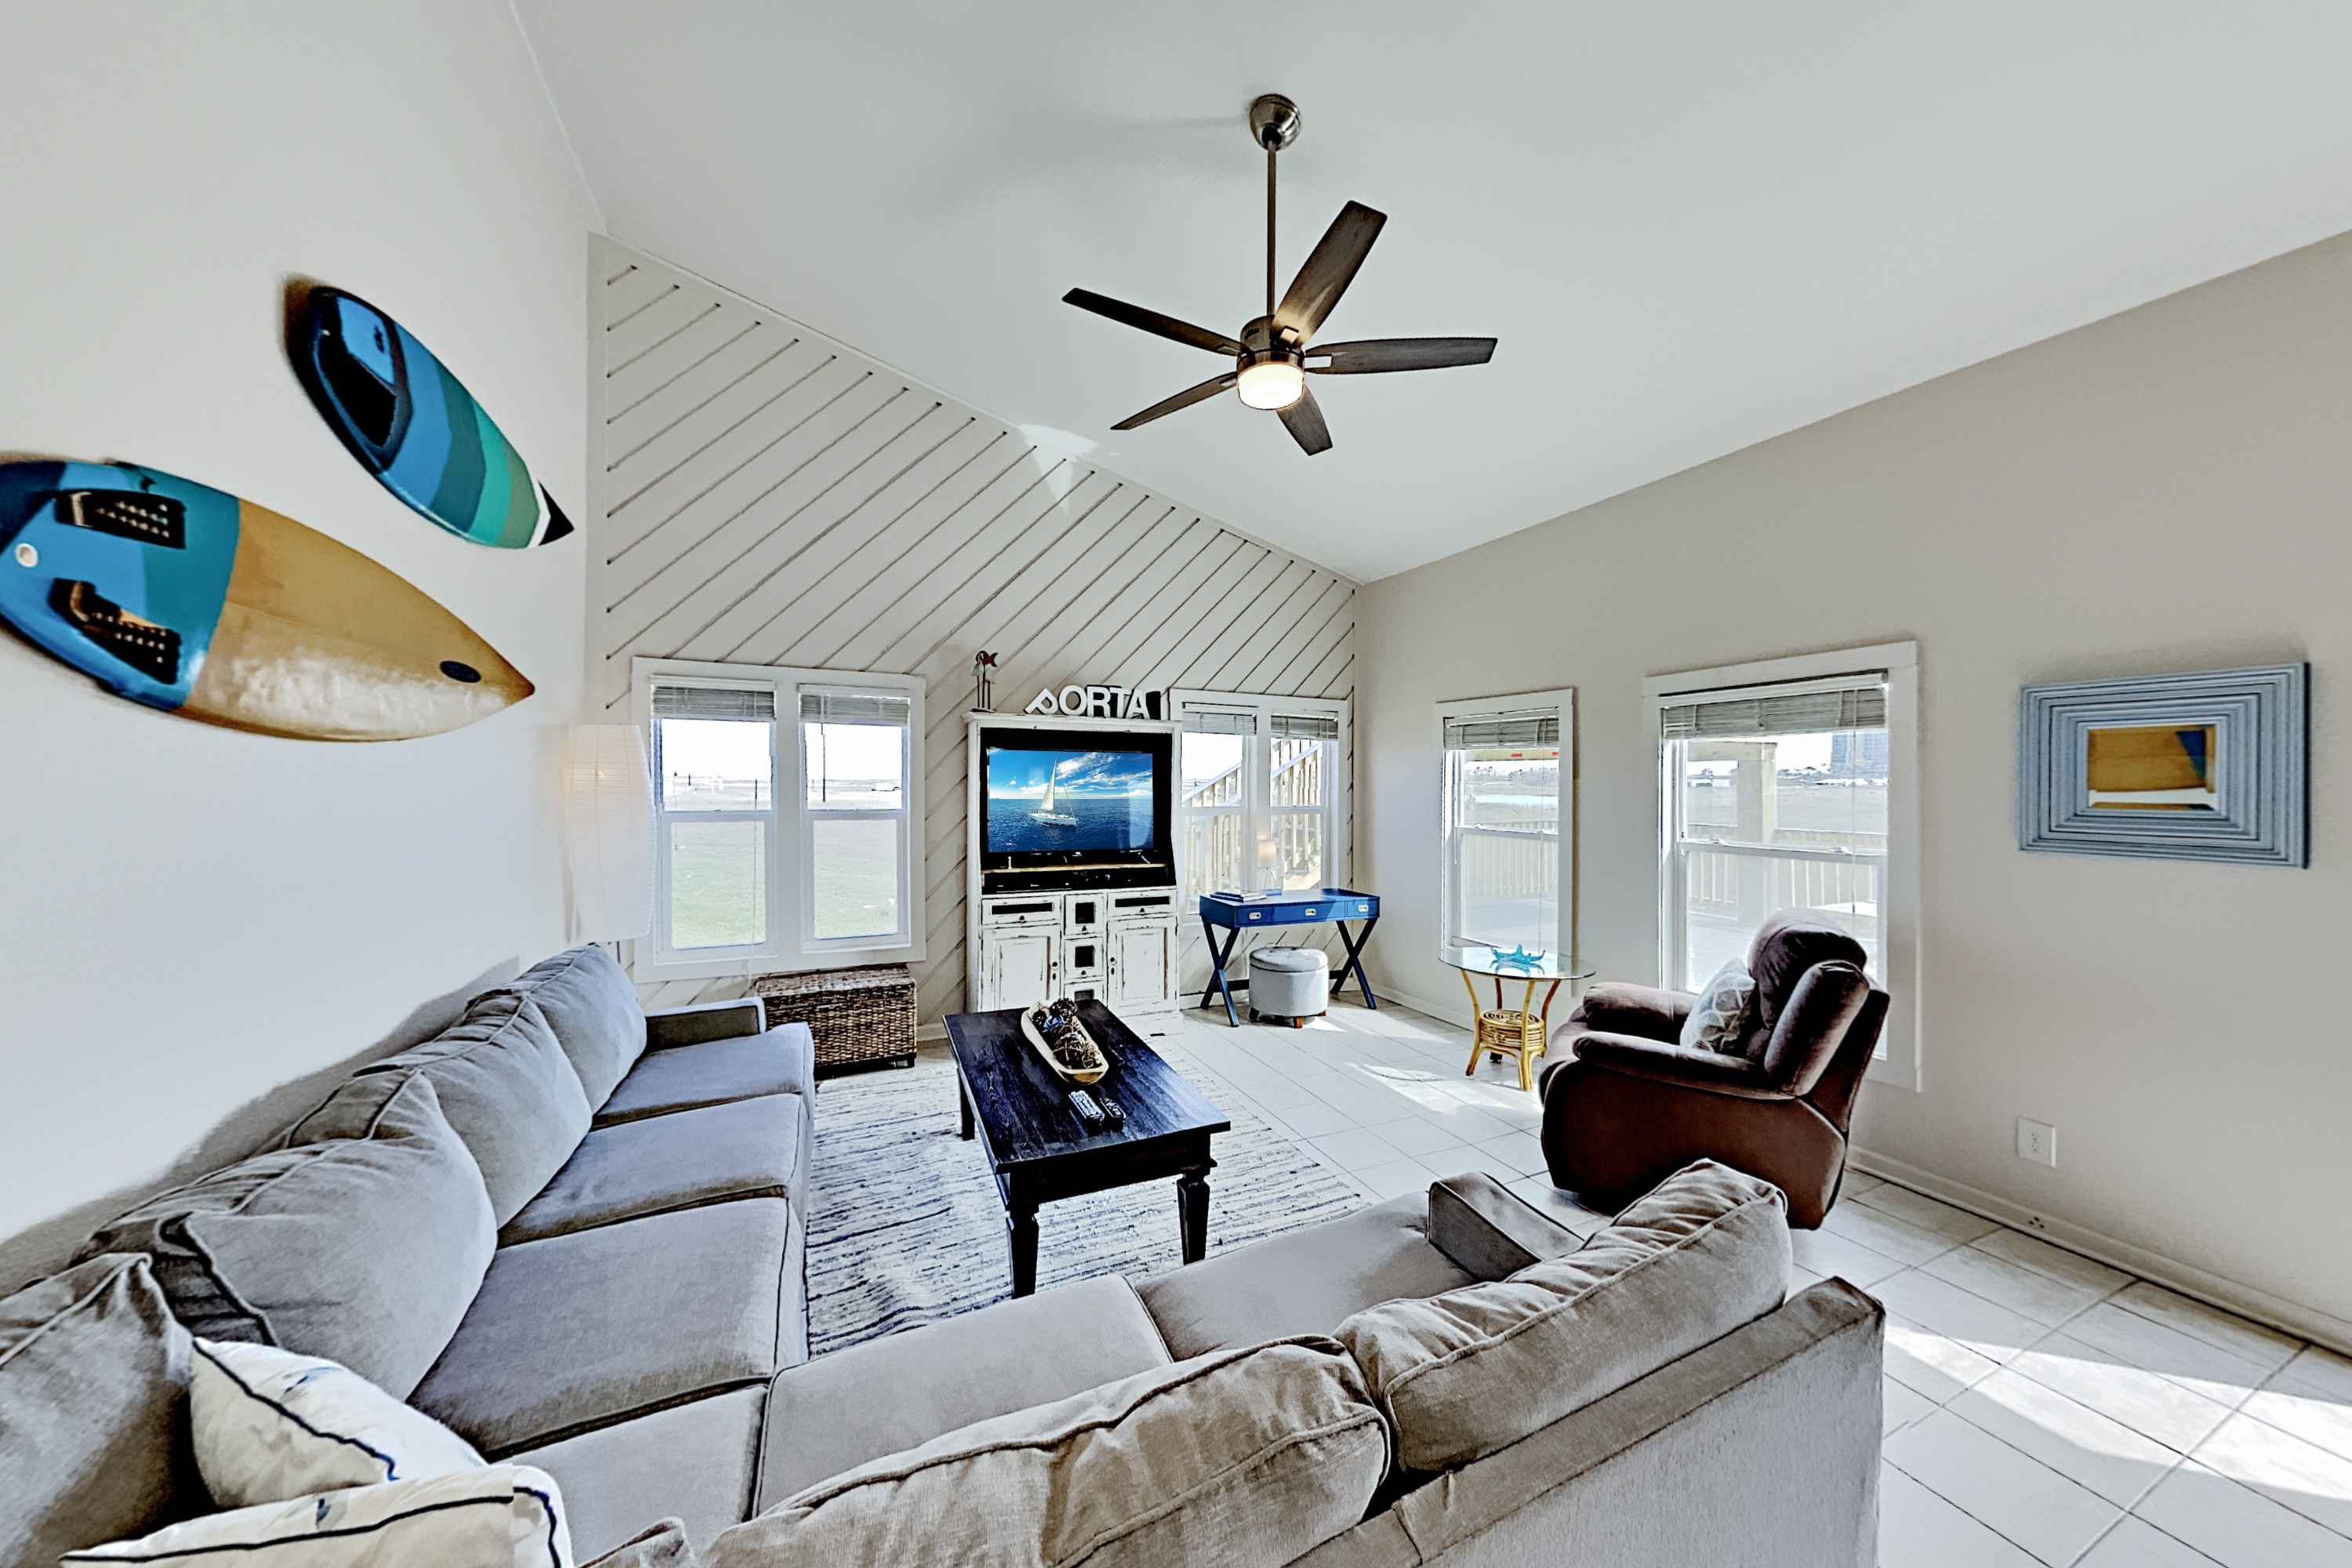 Port Aransas TX Vacation Rental Welcome to Port